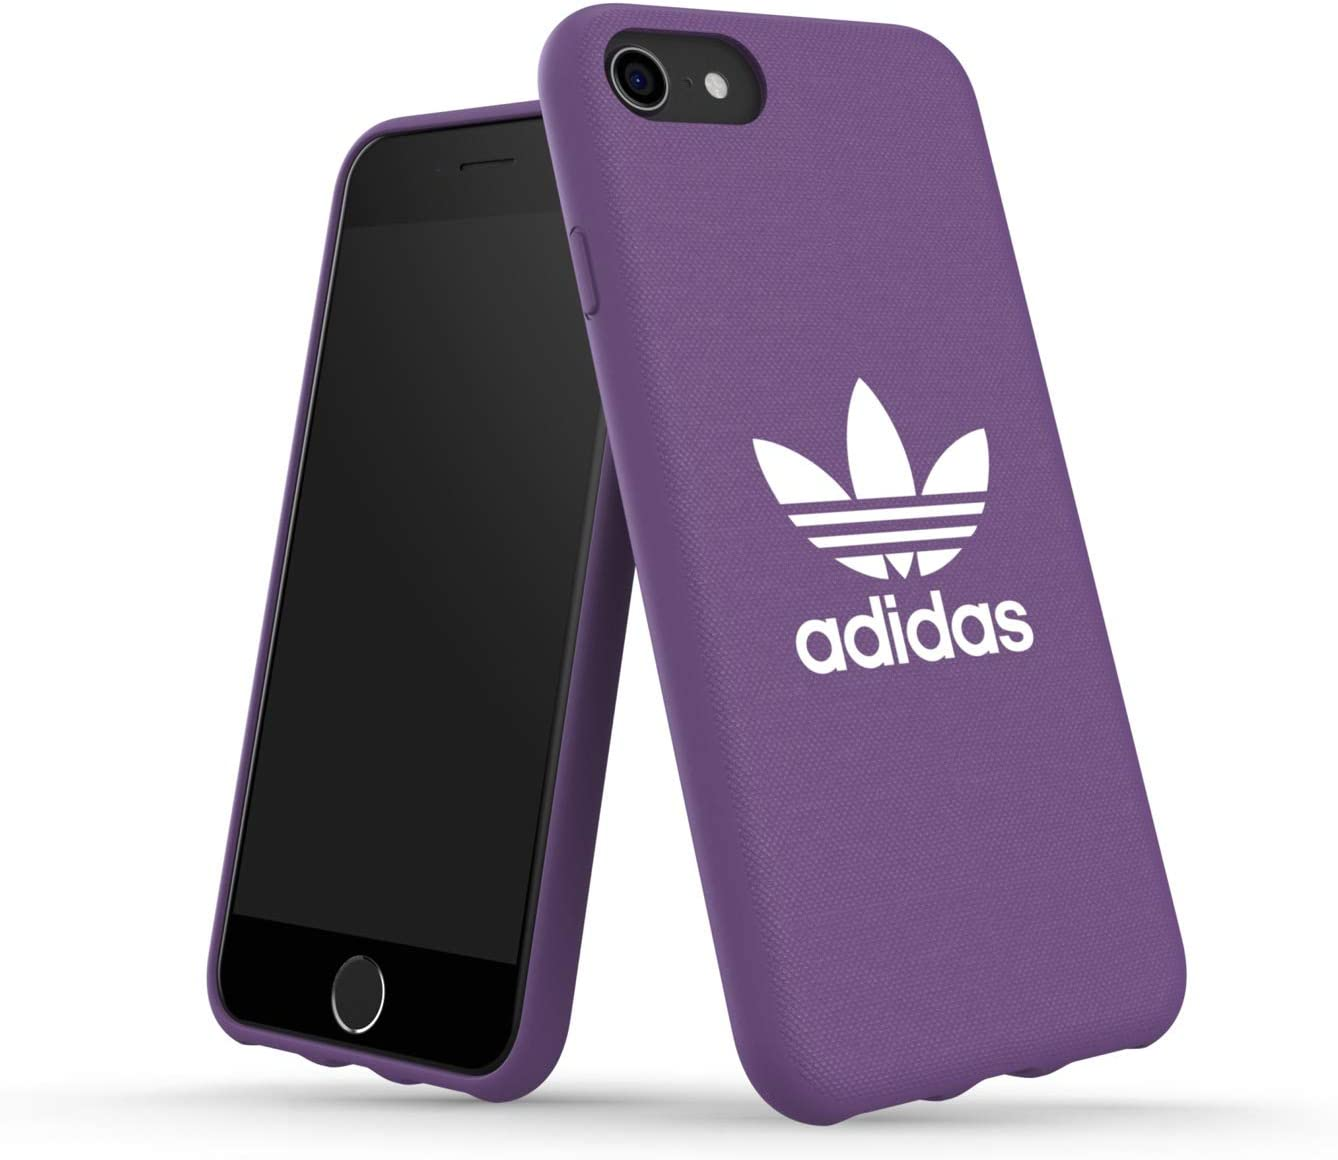 adidas Originals Moulded Case Canvas Designed for New iPhone SE (2020) and iPhone 6/6s/7/8 - Active Purple